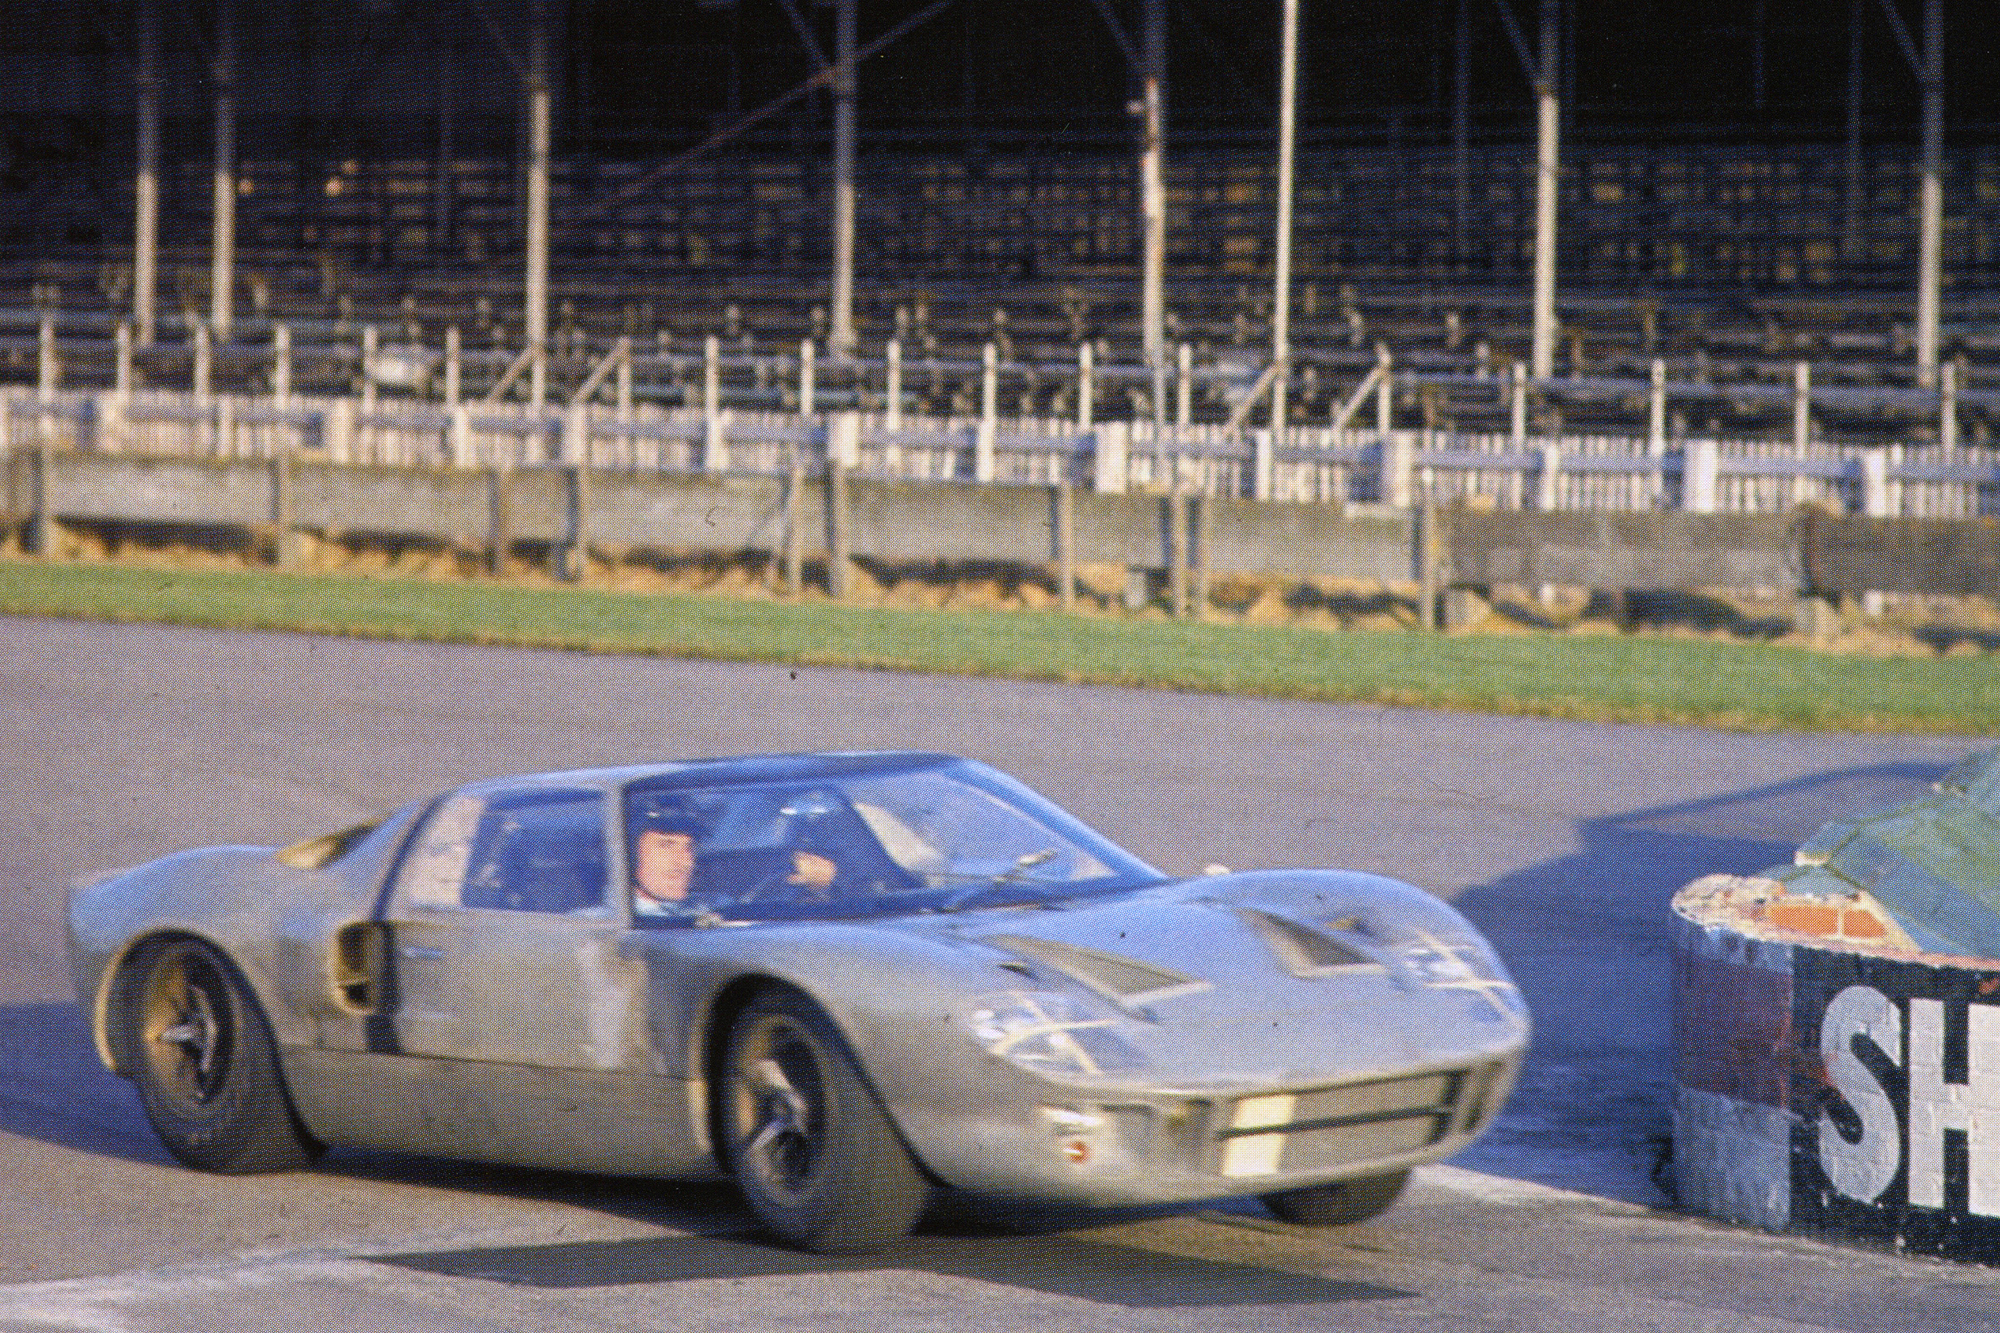 As part of Ford's effort to win Le Mans, two lightweight GT40's were built by Alan Mann Racing and were raced at Sebring by Jackie Stewart, Graham Hill, Sir John Whitmore and Frank Gardner.